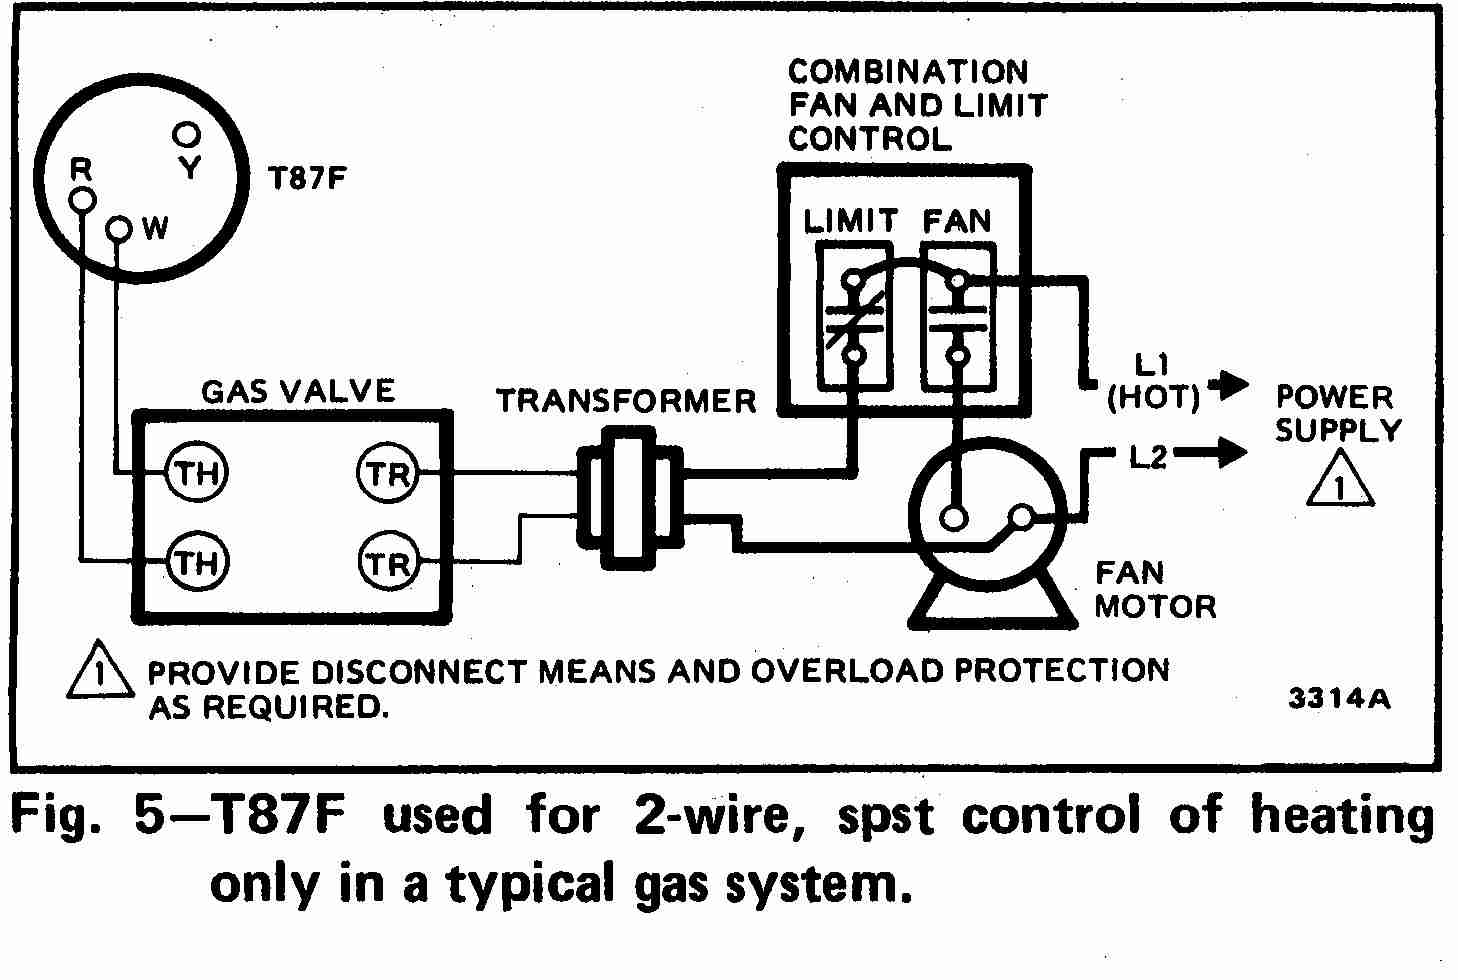 TT_T87F_0002_2Wg_DJF guide to wiring connections for room thermostats 2 wire thermostat wiring diagram at fashall.co